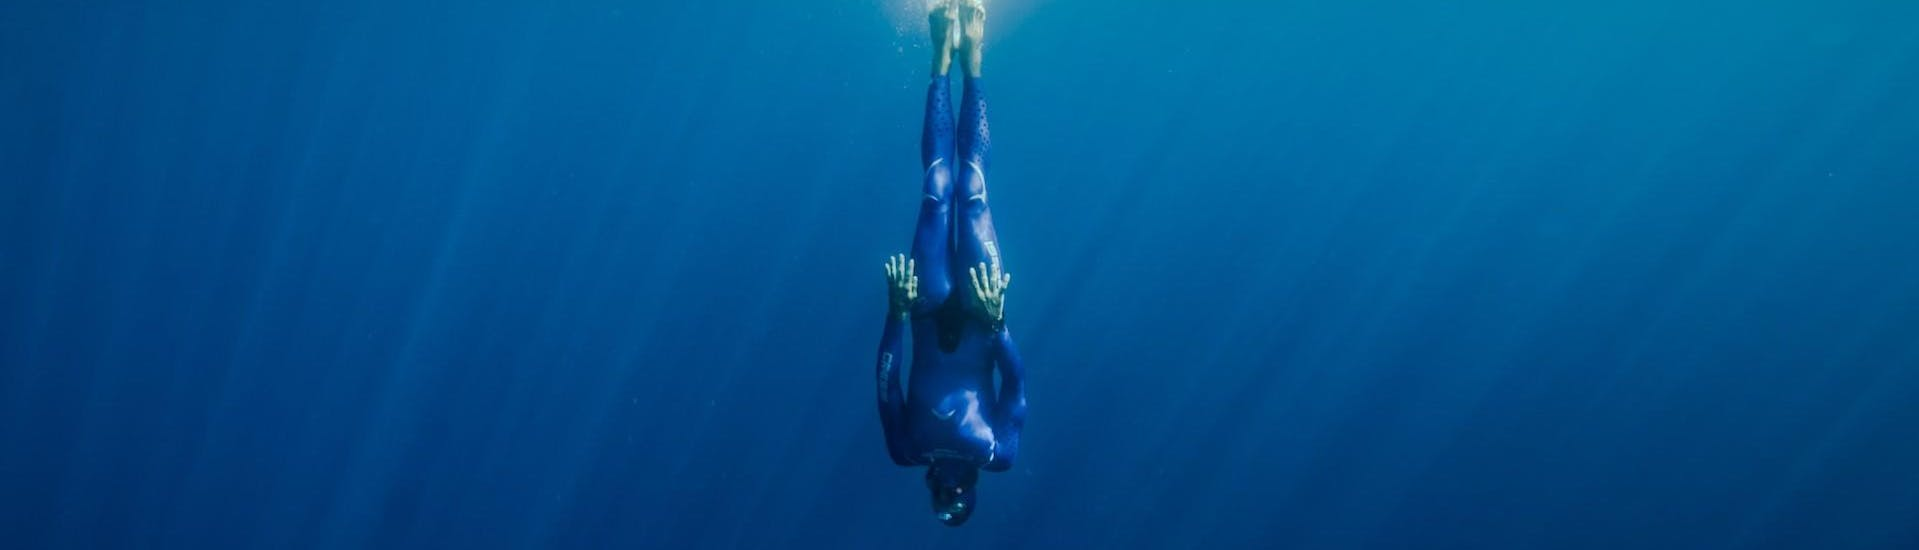 free-diving-lesson-in-annecy-lake-reda-apnea-annecy-hero